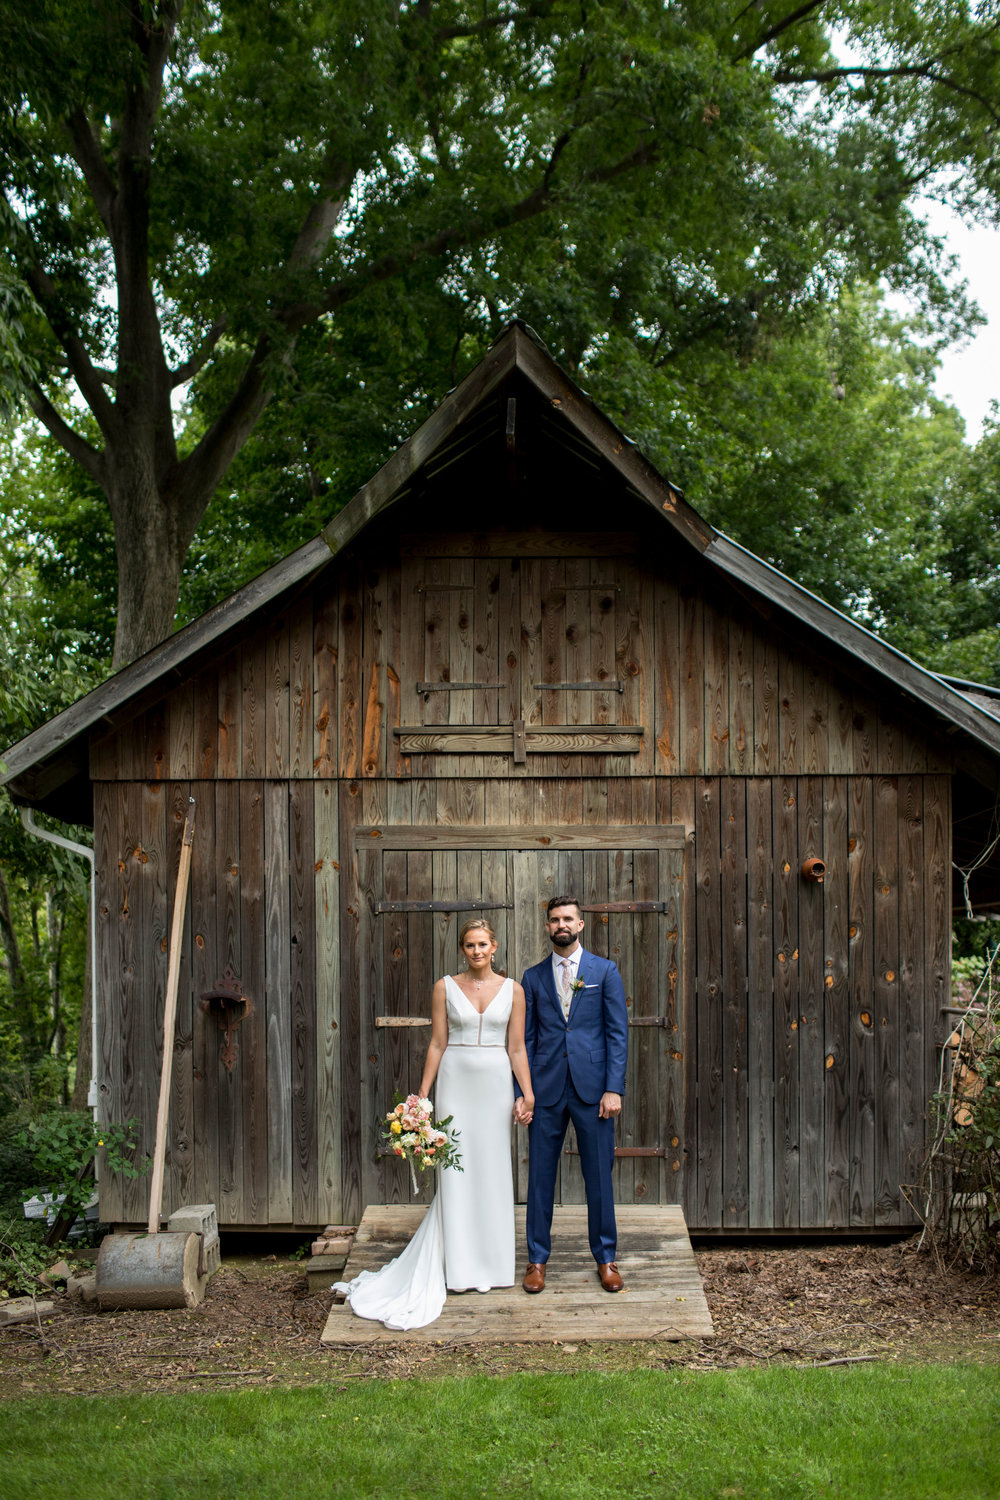 The Bride + Groom during their First Look Photos!  Photography by Zachary Hartzell Photography, LLC